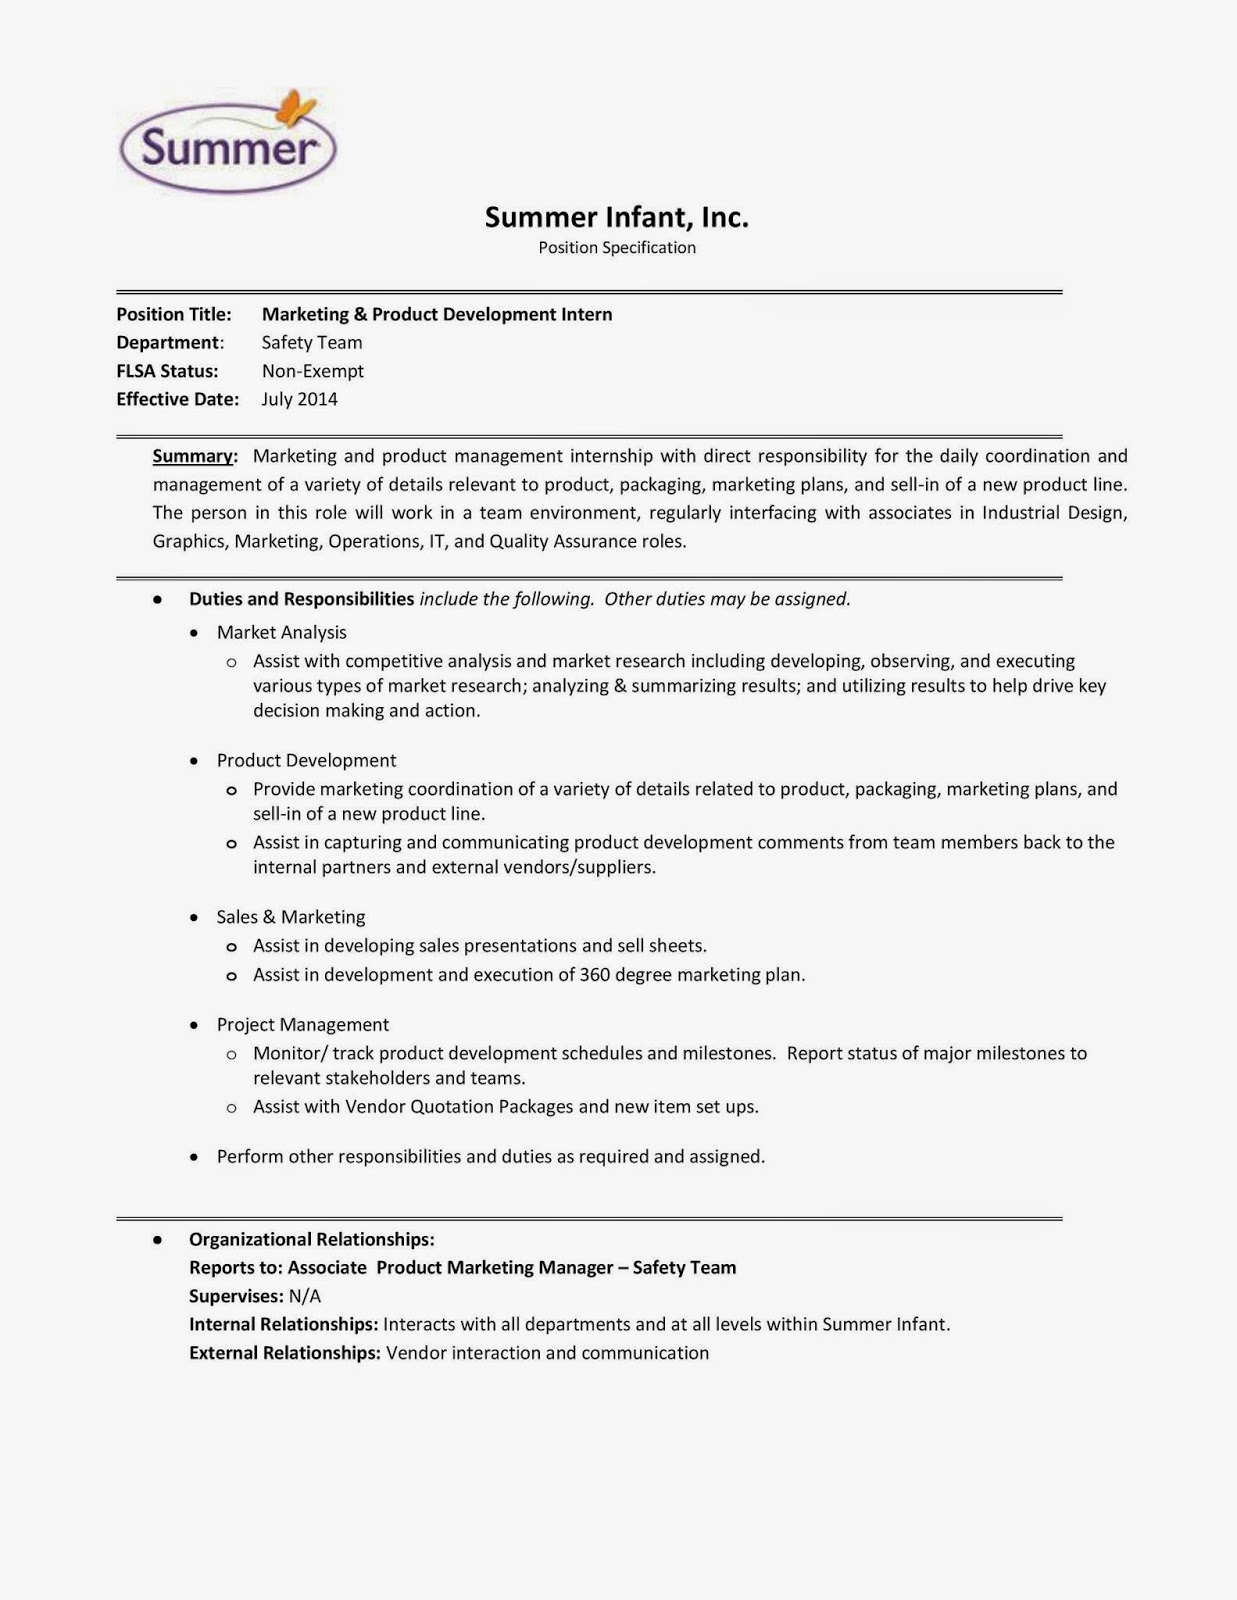 Summer Infant, Inc.   Marketing U0026 Product Development Intern